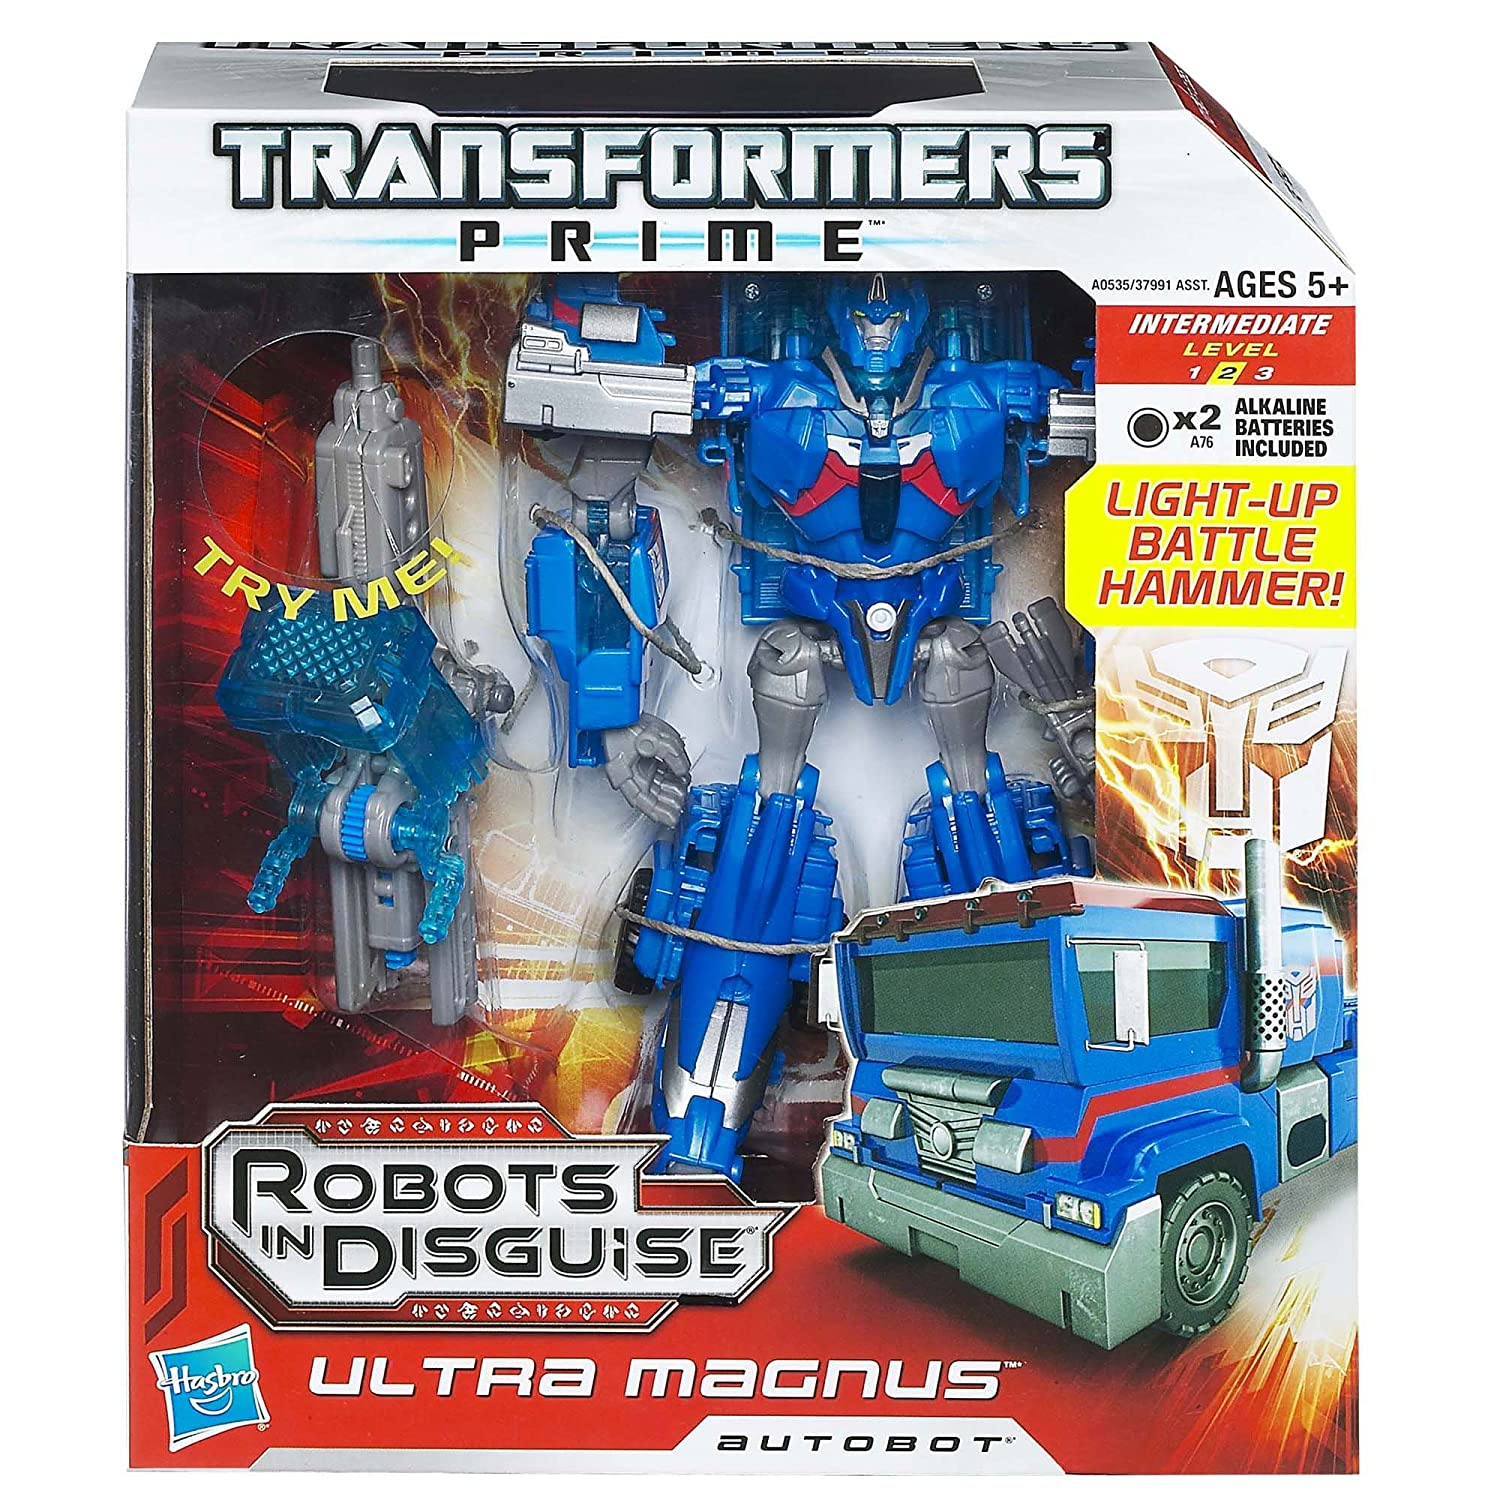 Transformers Prime Robots in Disguise Voyager Class - Ultra Magnus Figure (japan import): Amazon.es: Juguetes y juegos